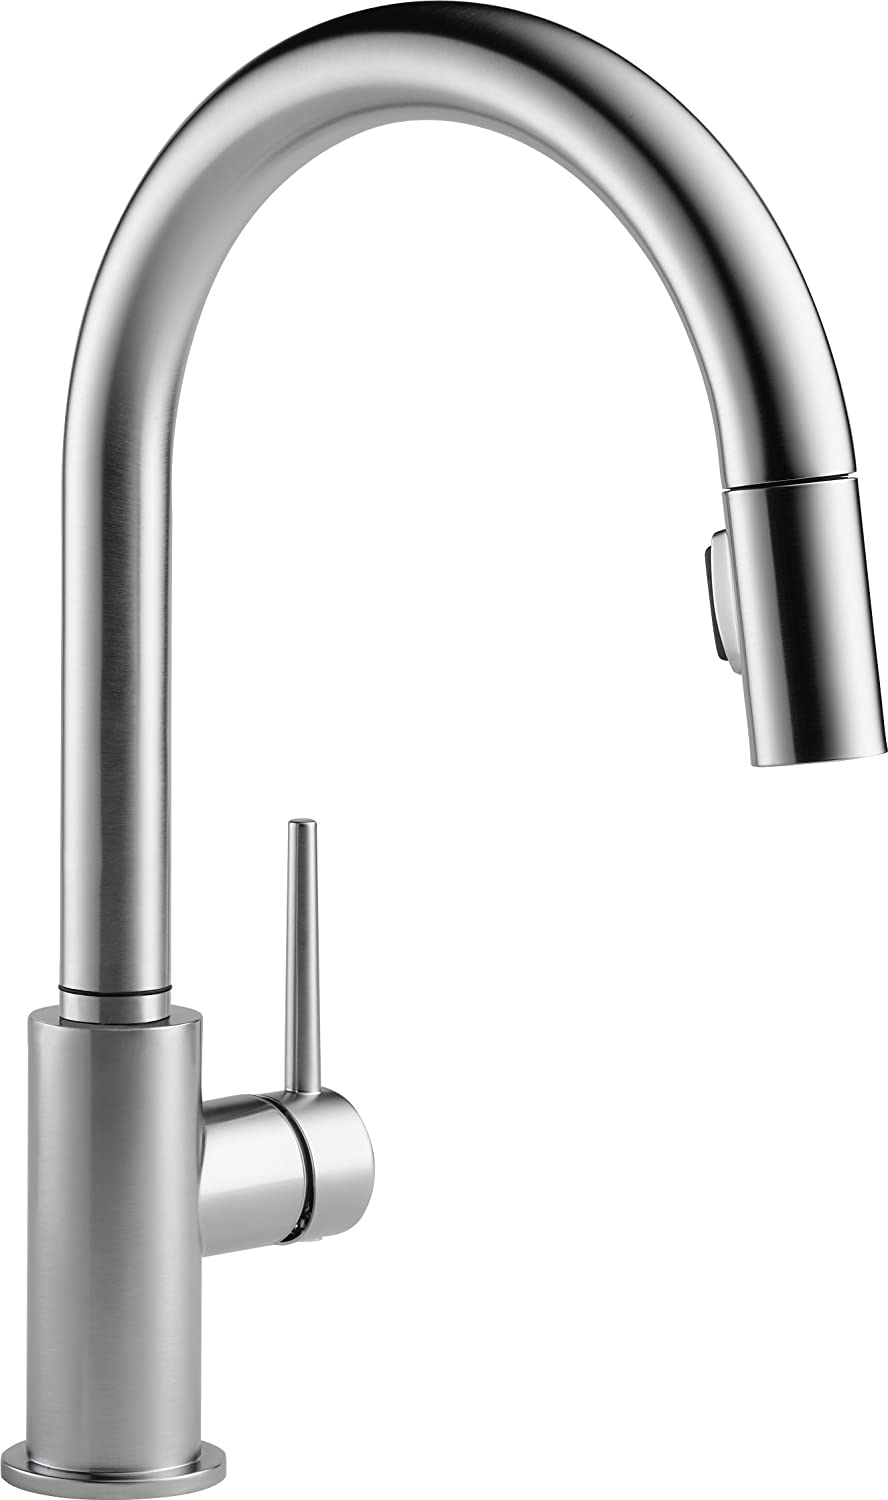 Delta Trinsic Single-Handle Kitchen Pull-Down Faucet with Magnetic ...